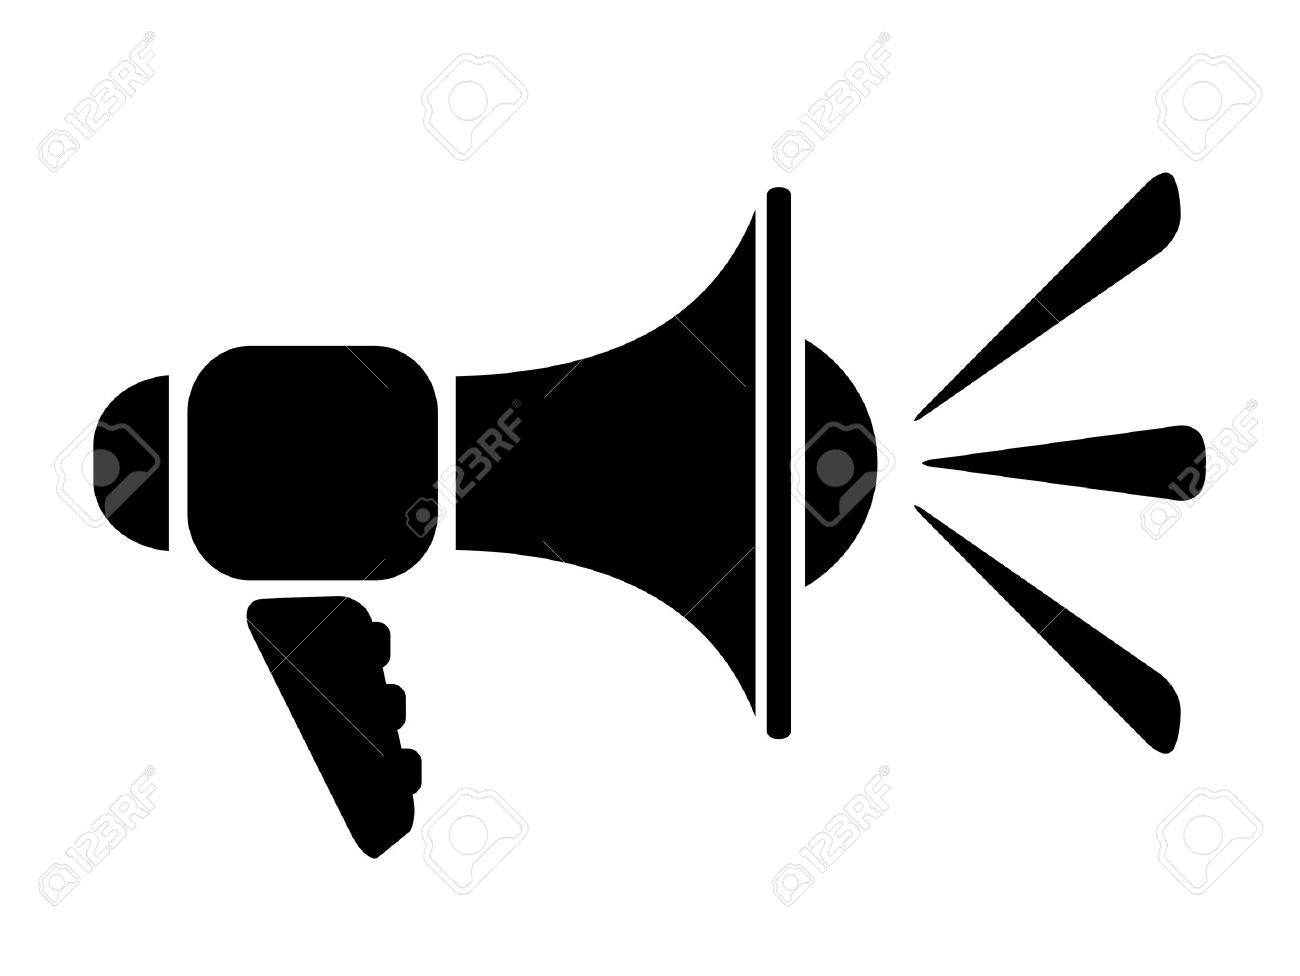 loudspeaker icon royalty free cliparts vectors and stock illustration image 28415985 loudspeaker icon